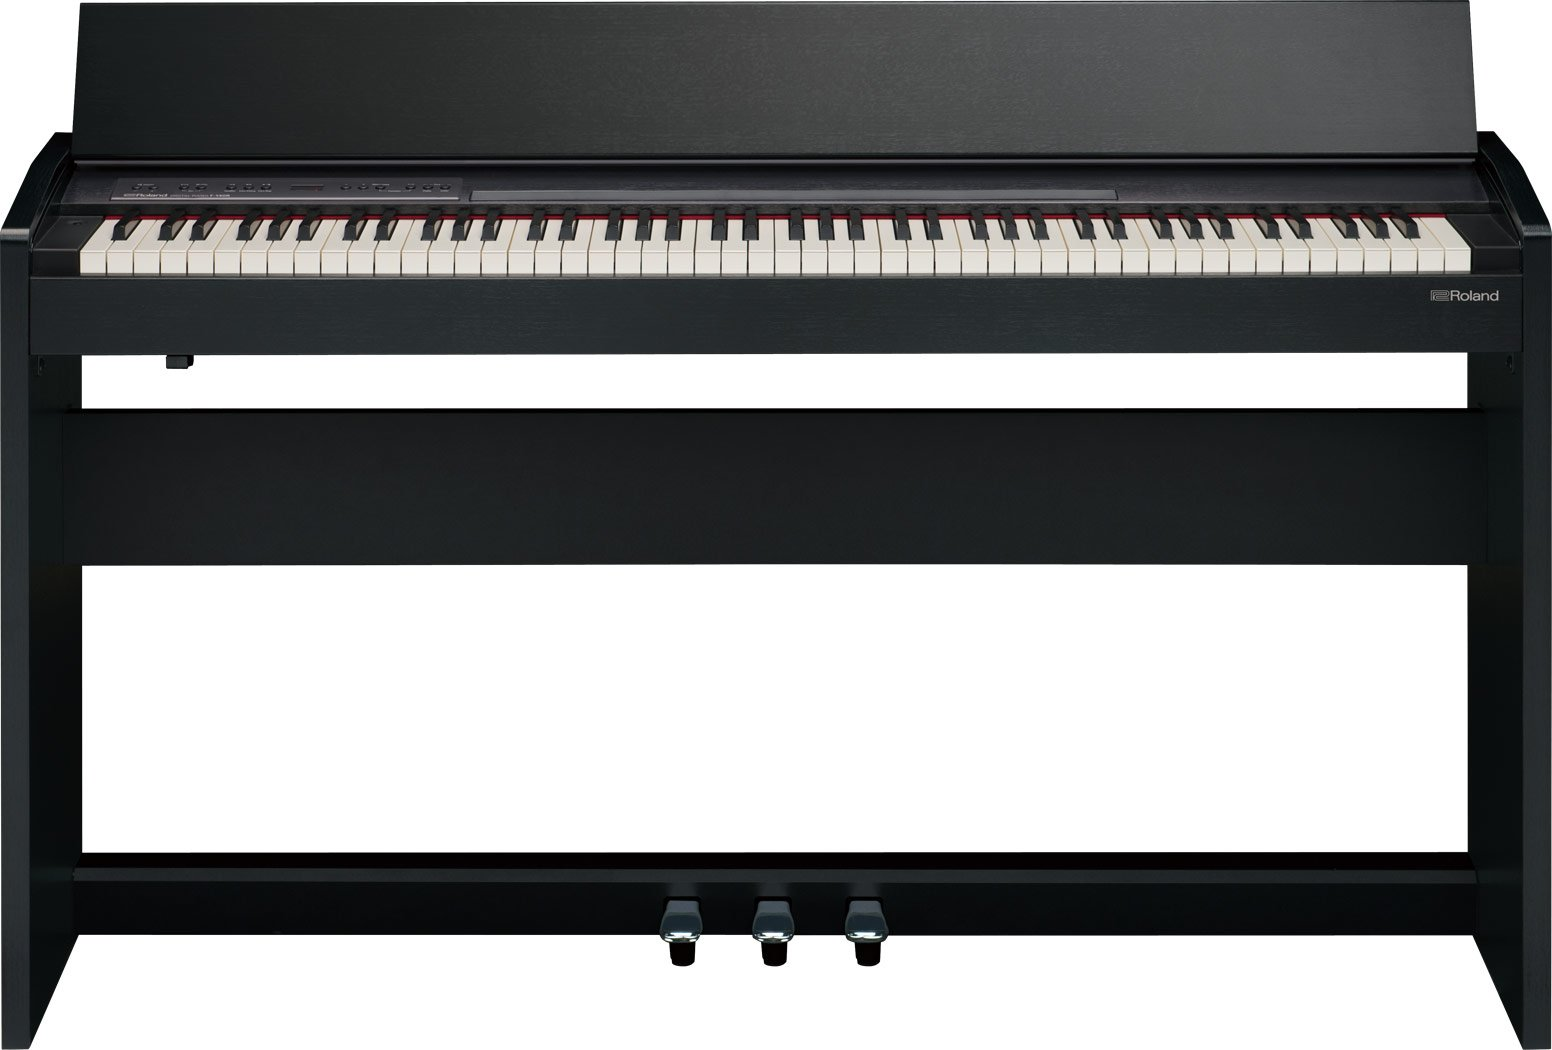 Roland Compact 88-key Digital Piano with Built-In Speaker, contemporary black (F-140R-CB) by Roland